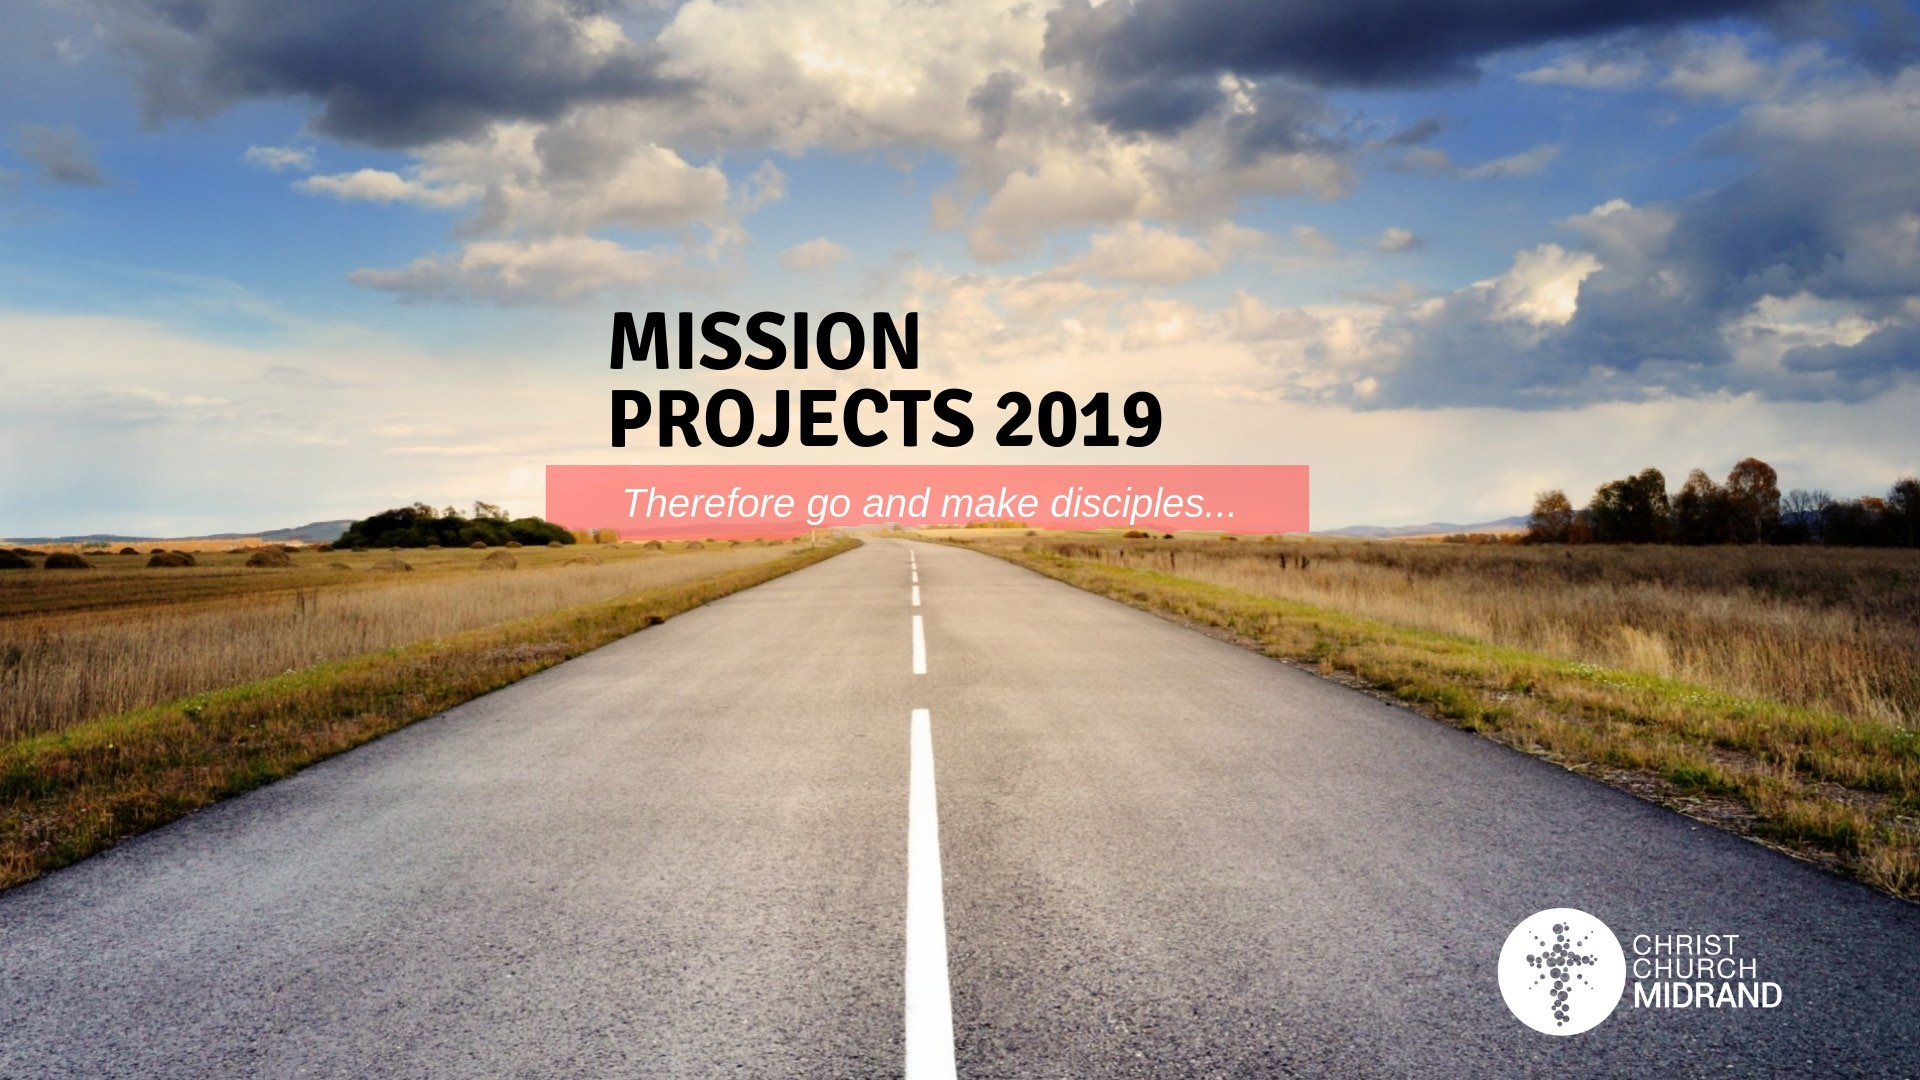 Mission Projects 2019